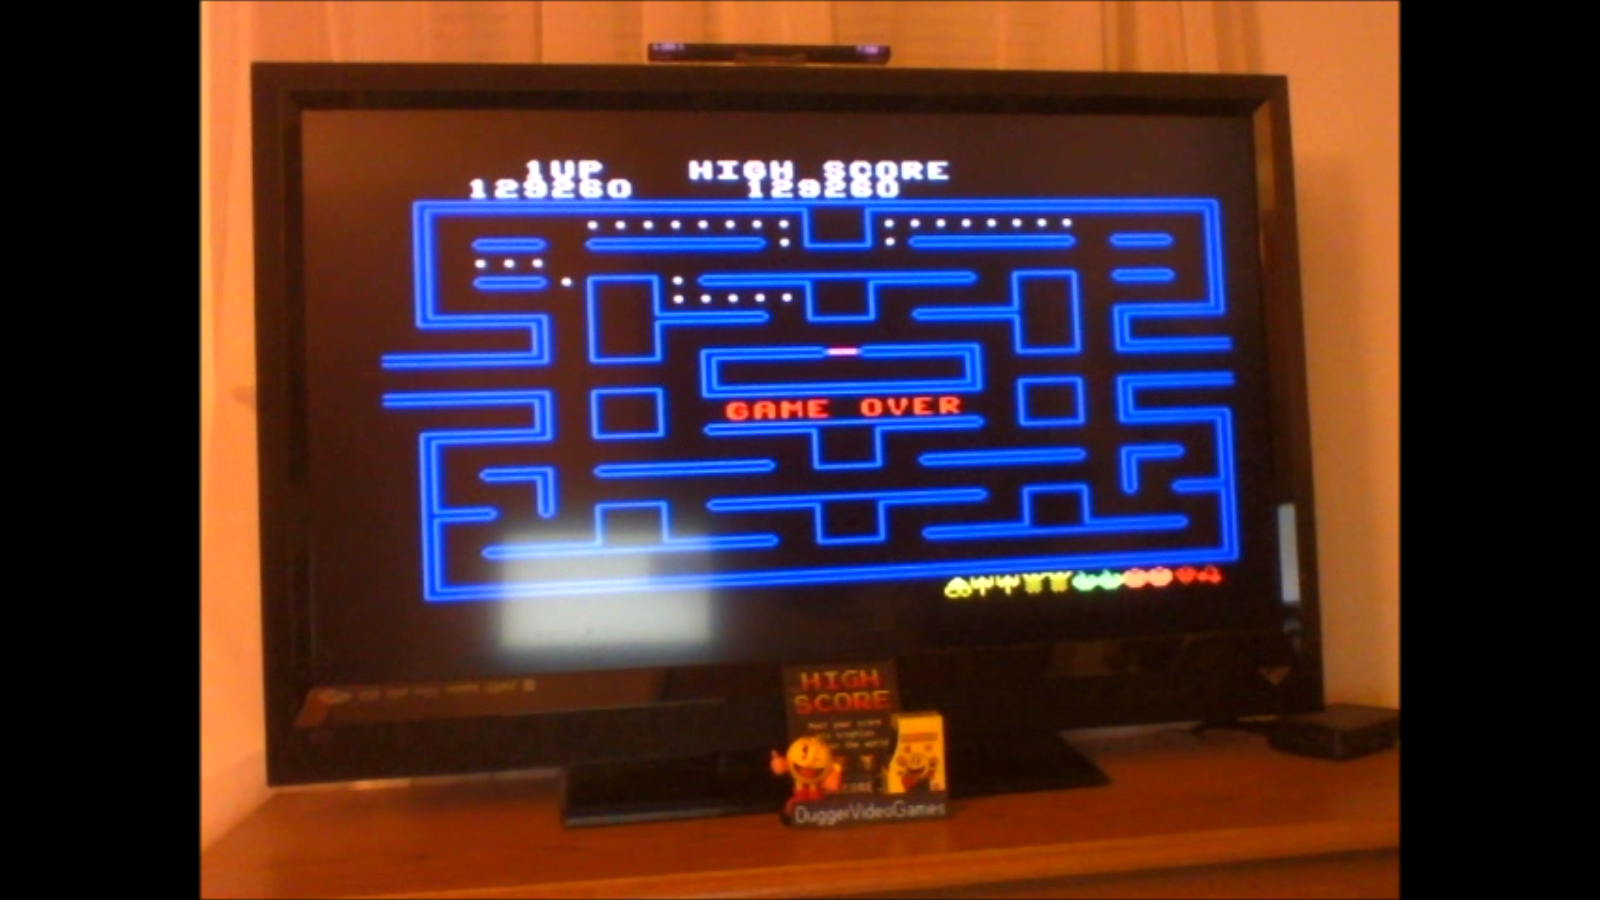 DuggerVideoGames: Pac-Man (Colecovision Emulated) 129,260 points on 2016-11-30 17:18:22